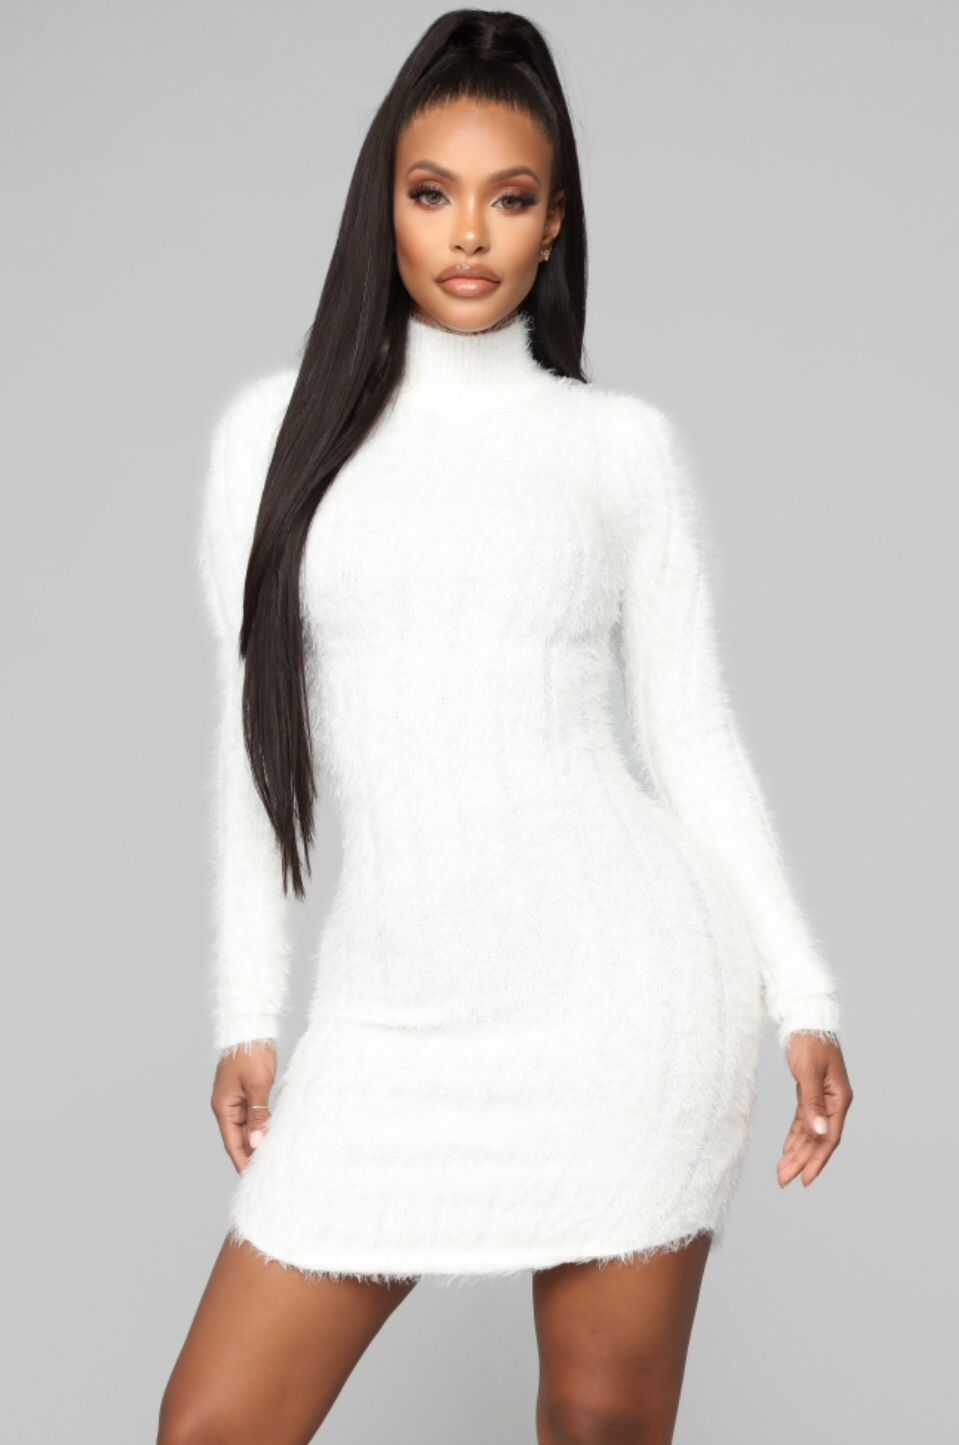 Feel Me Up Fuzzy Sweater Dress White White sweater